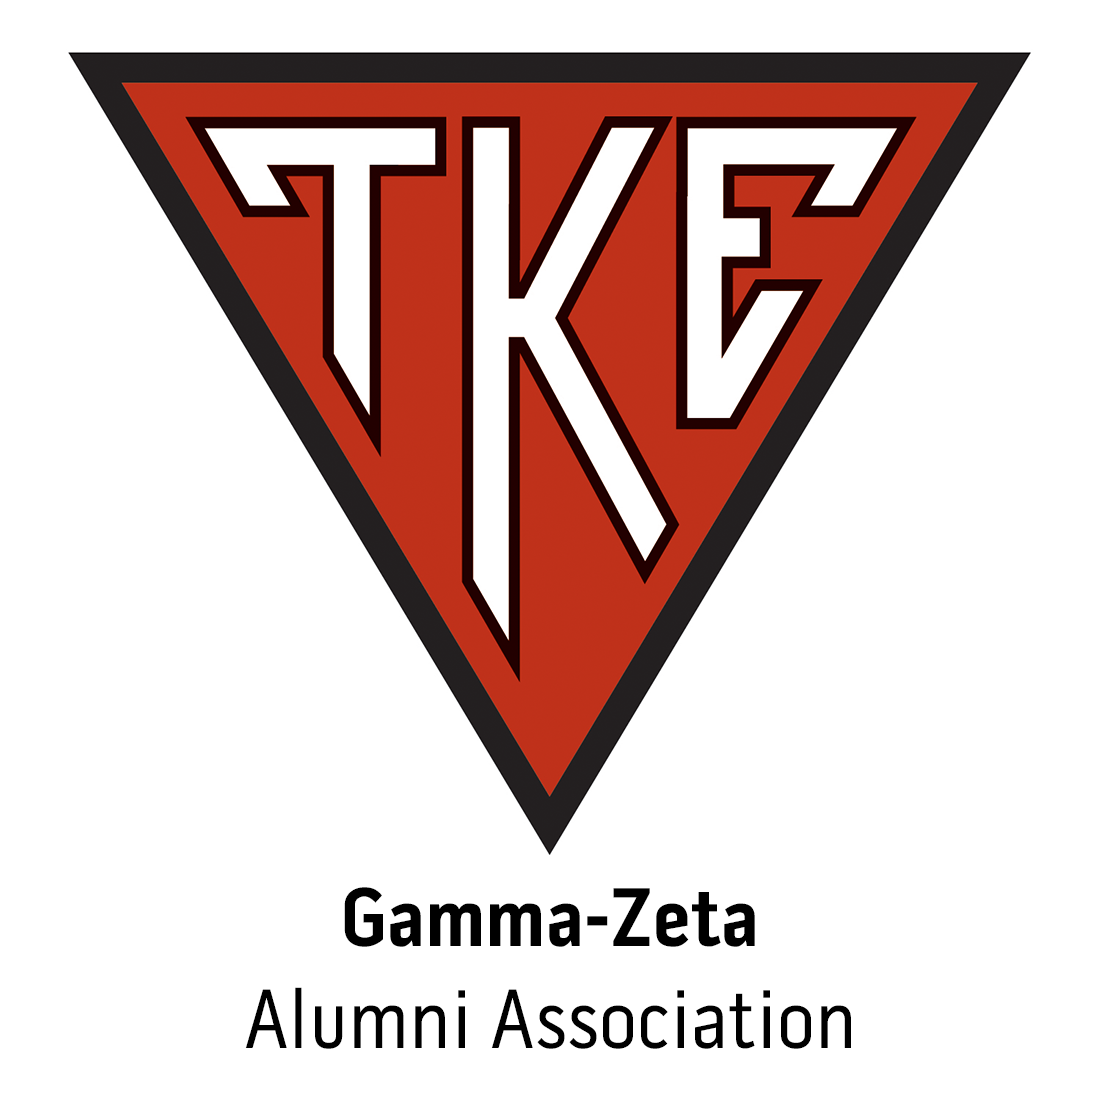 Gamma-Zeta Alumni Association at Hartwick College